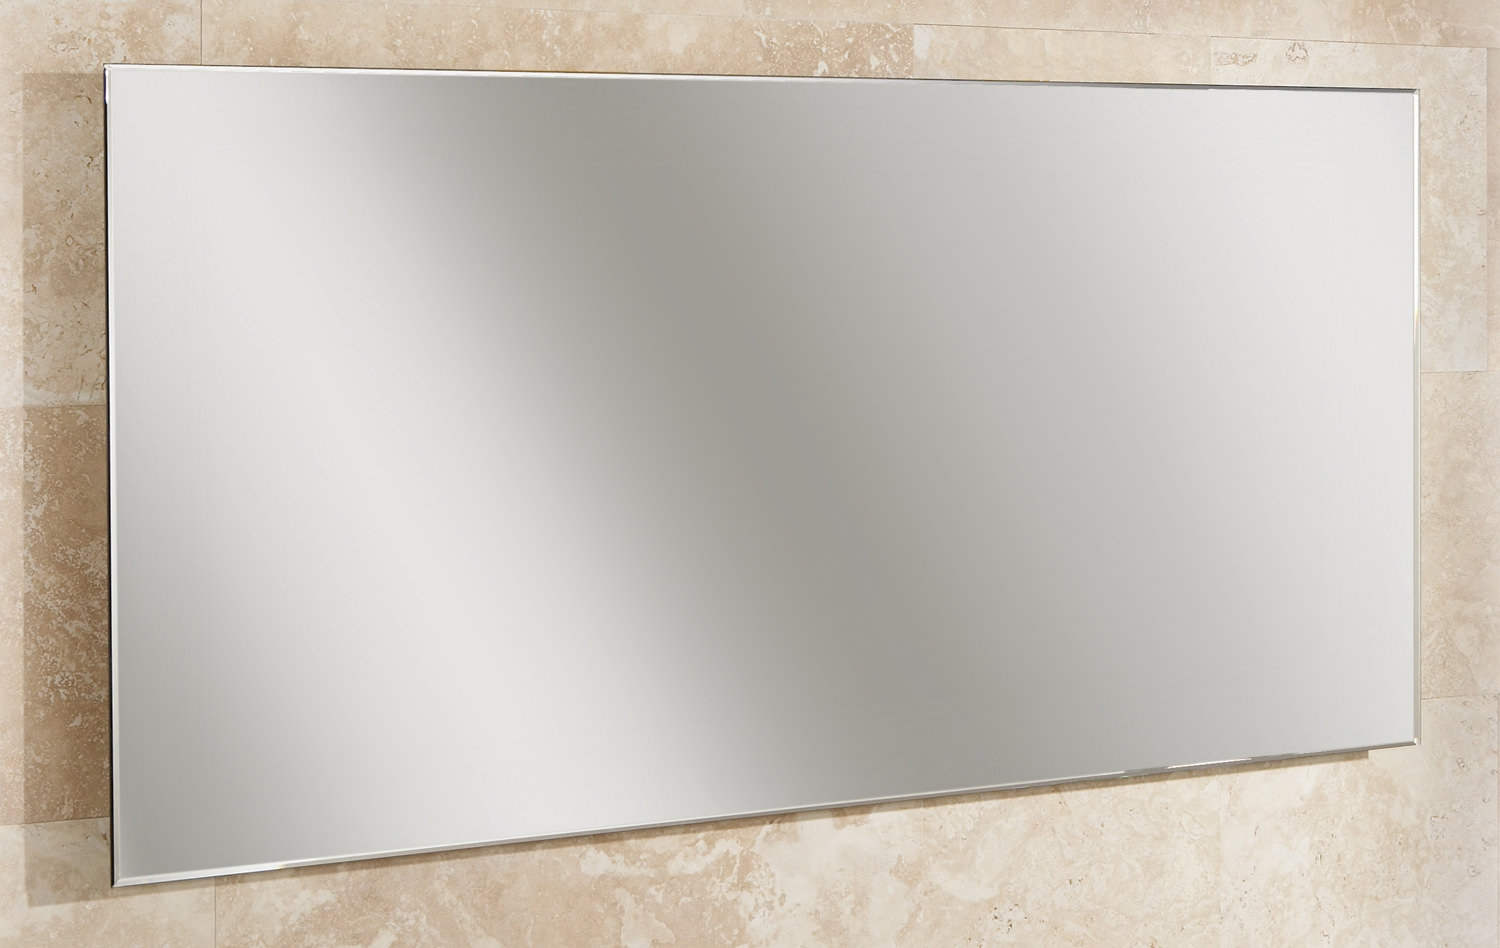 Hib Willow Landscape Bevelled Edge Mirror 1200 X 600mm 77305000 Intended For Large Bevelled Edge Mirror (Image 4 of 15)